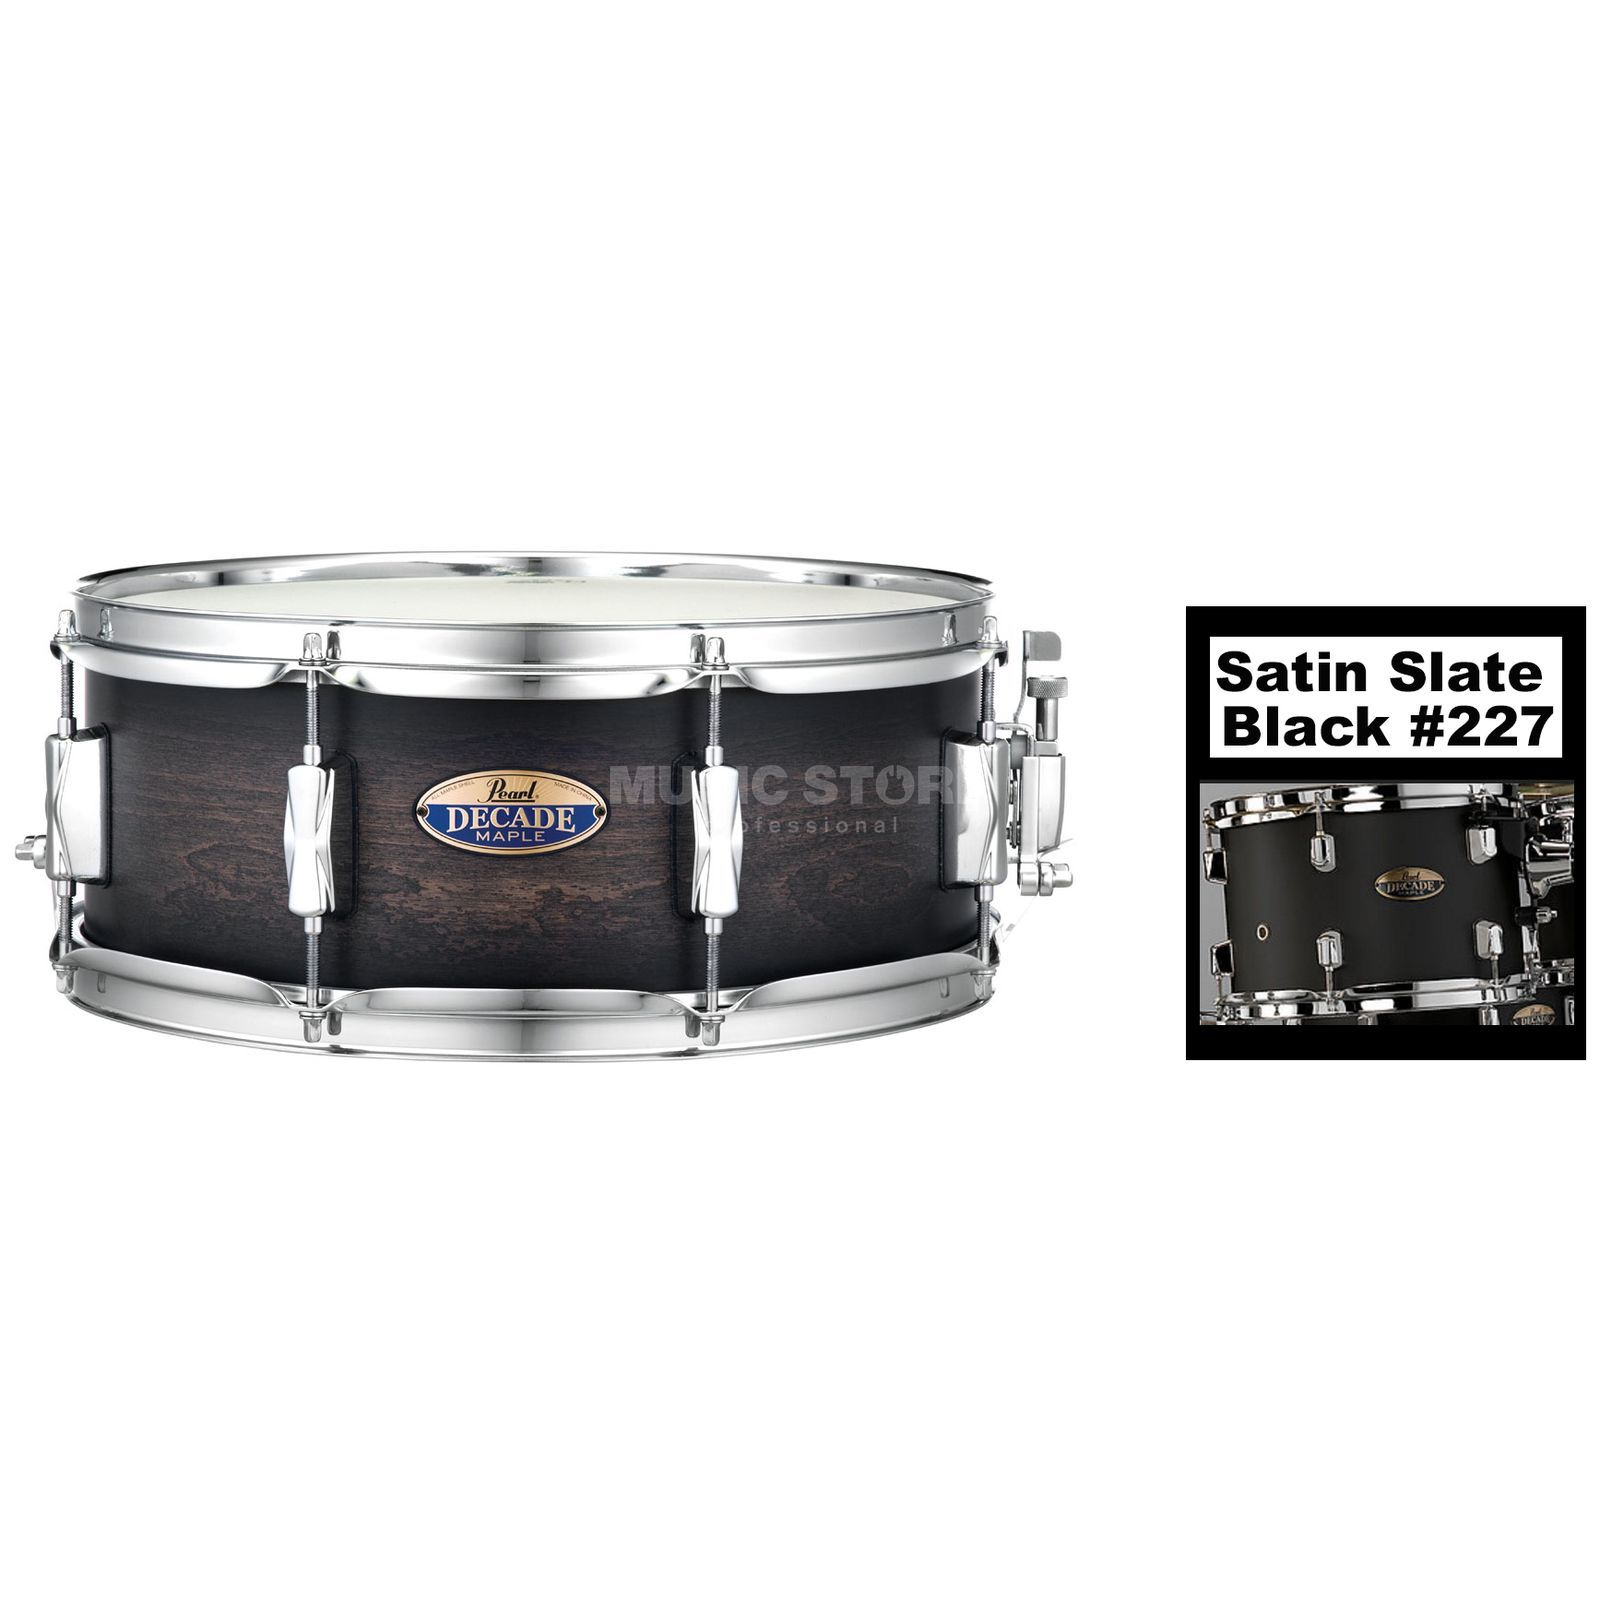 "Pearl Decade Maple Snare 14""x5,5"", Satin Slate Black #227 Изображение товара"